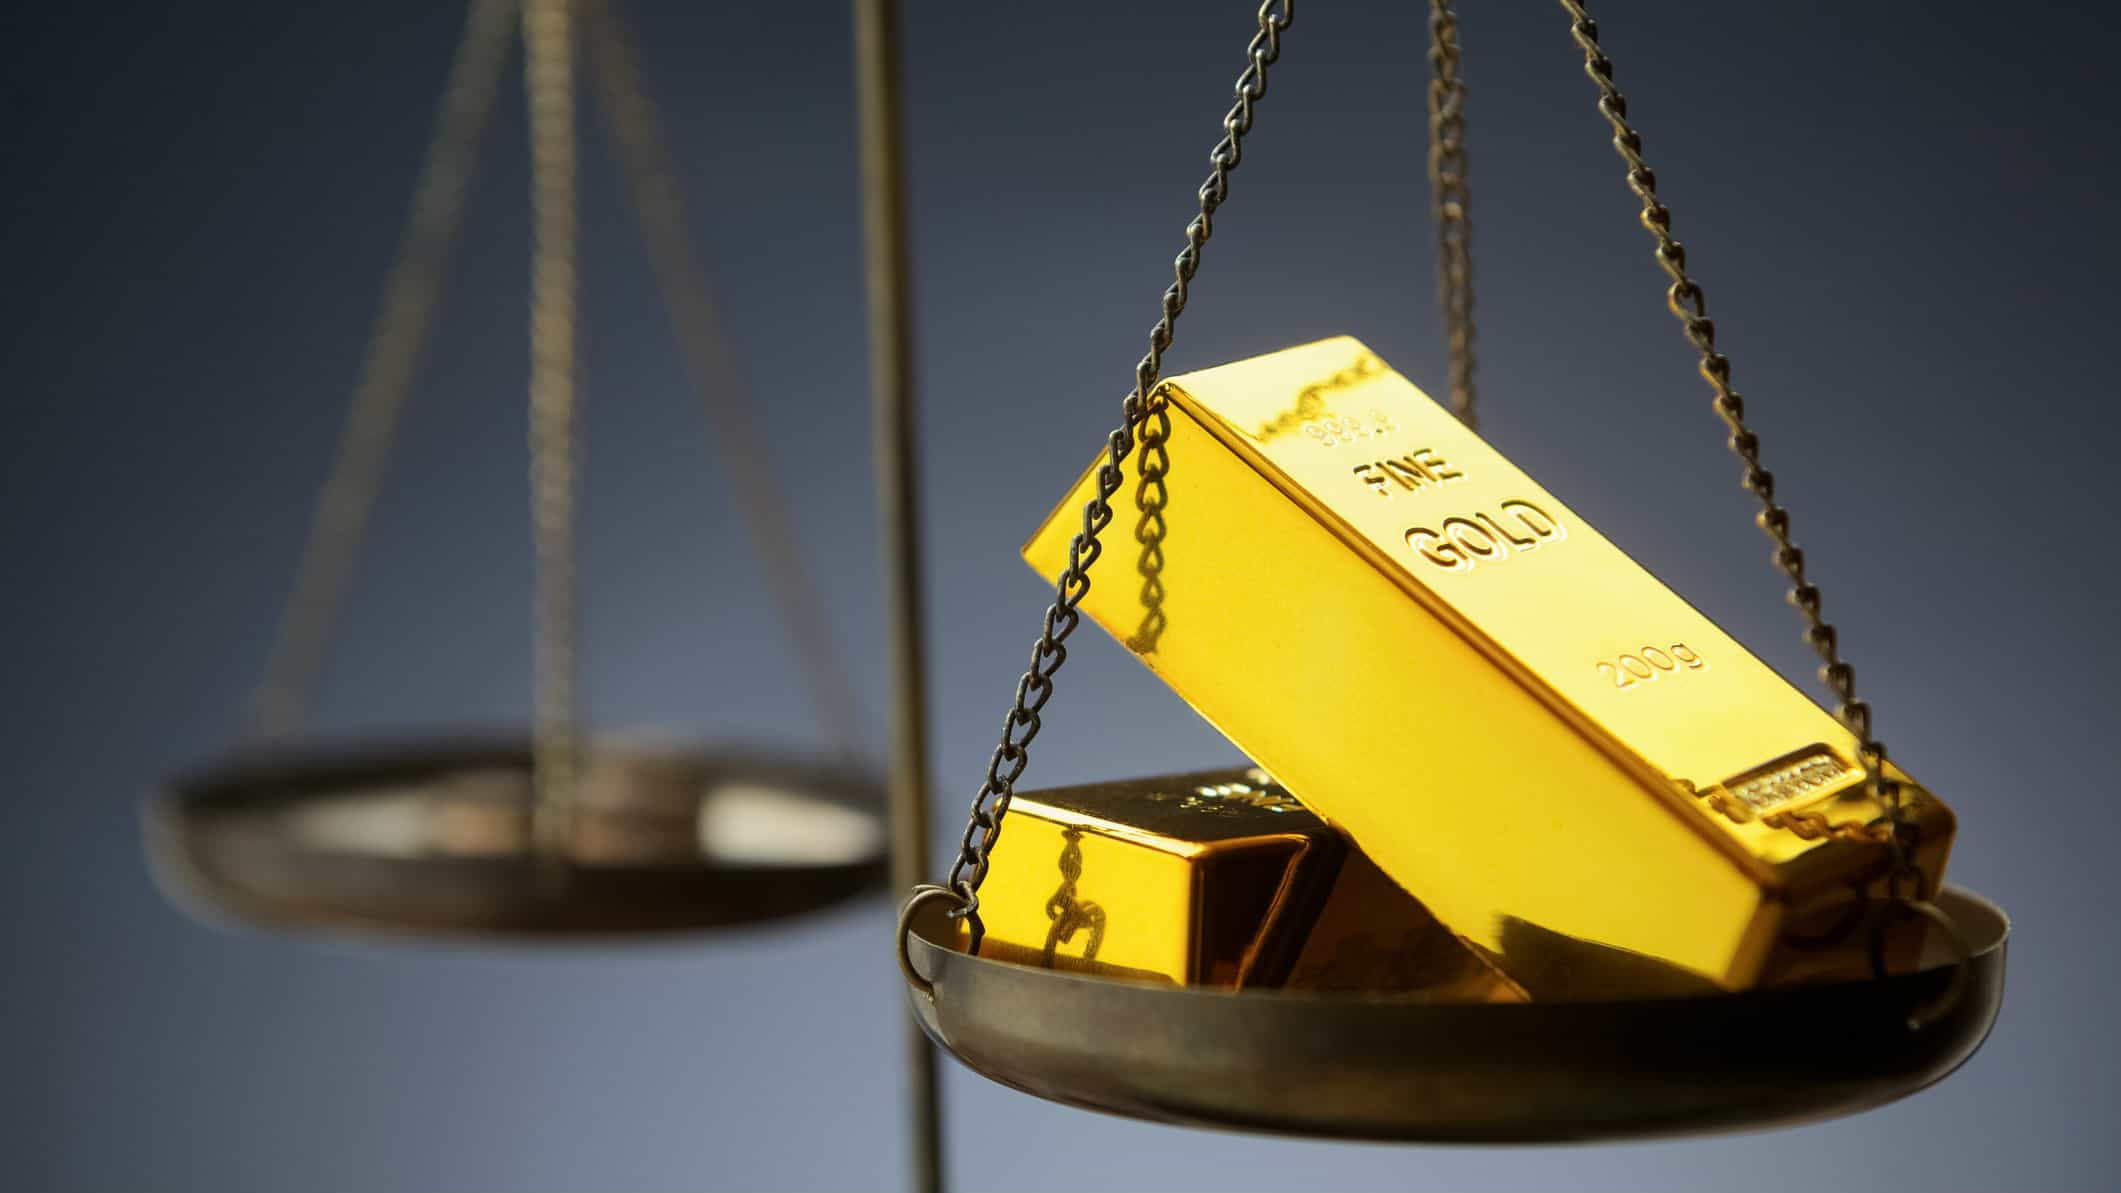 Old fashioned scales weighing two gold bars in front of dark background, gold share price, newcrest mining share price